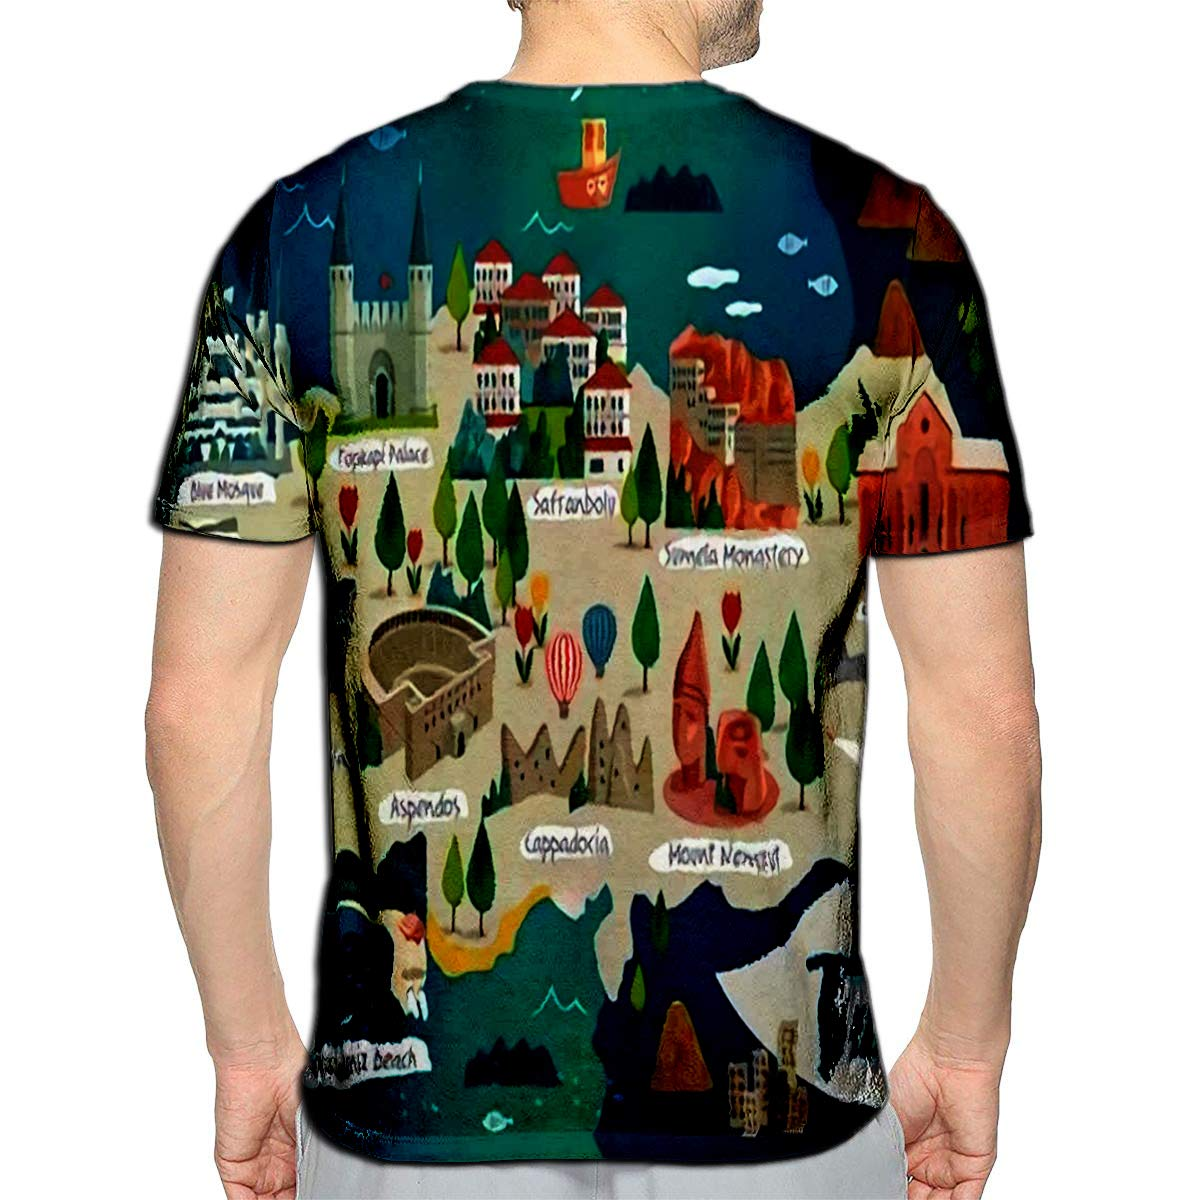 3D Printed T-Shirts Turkey Travel Map and Turkish Cotton Castle On The Left Side Saffron City Short Sleeve Tops Tees